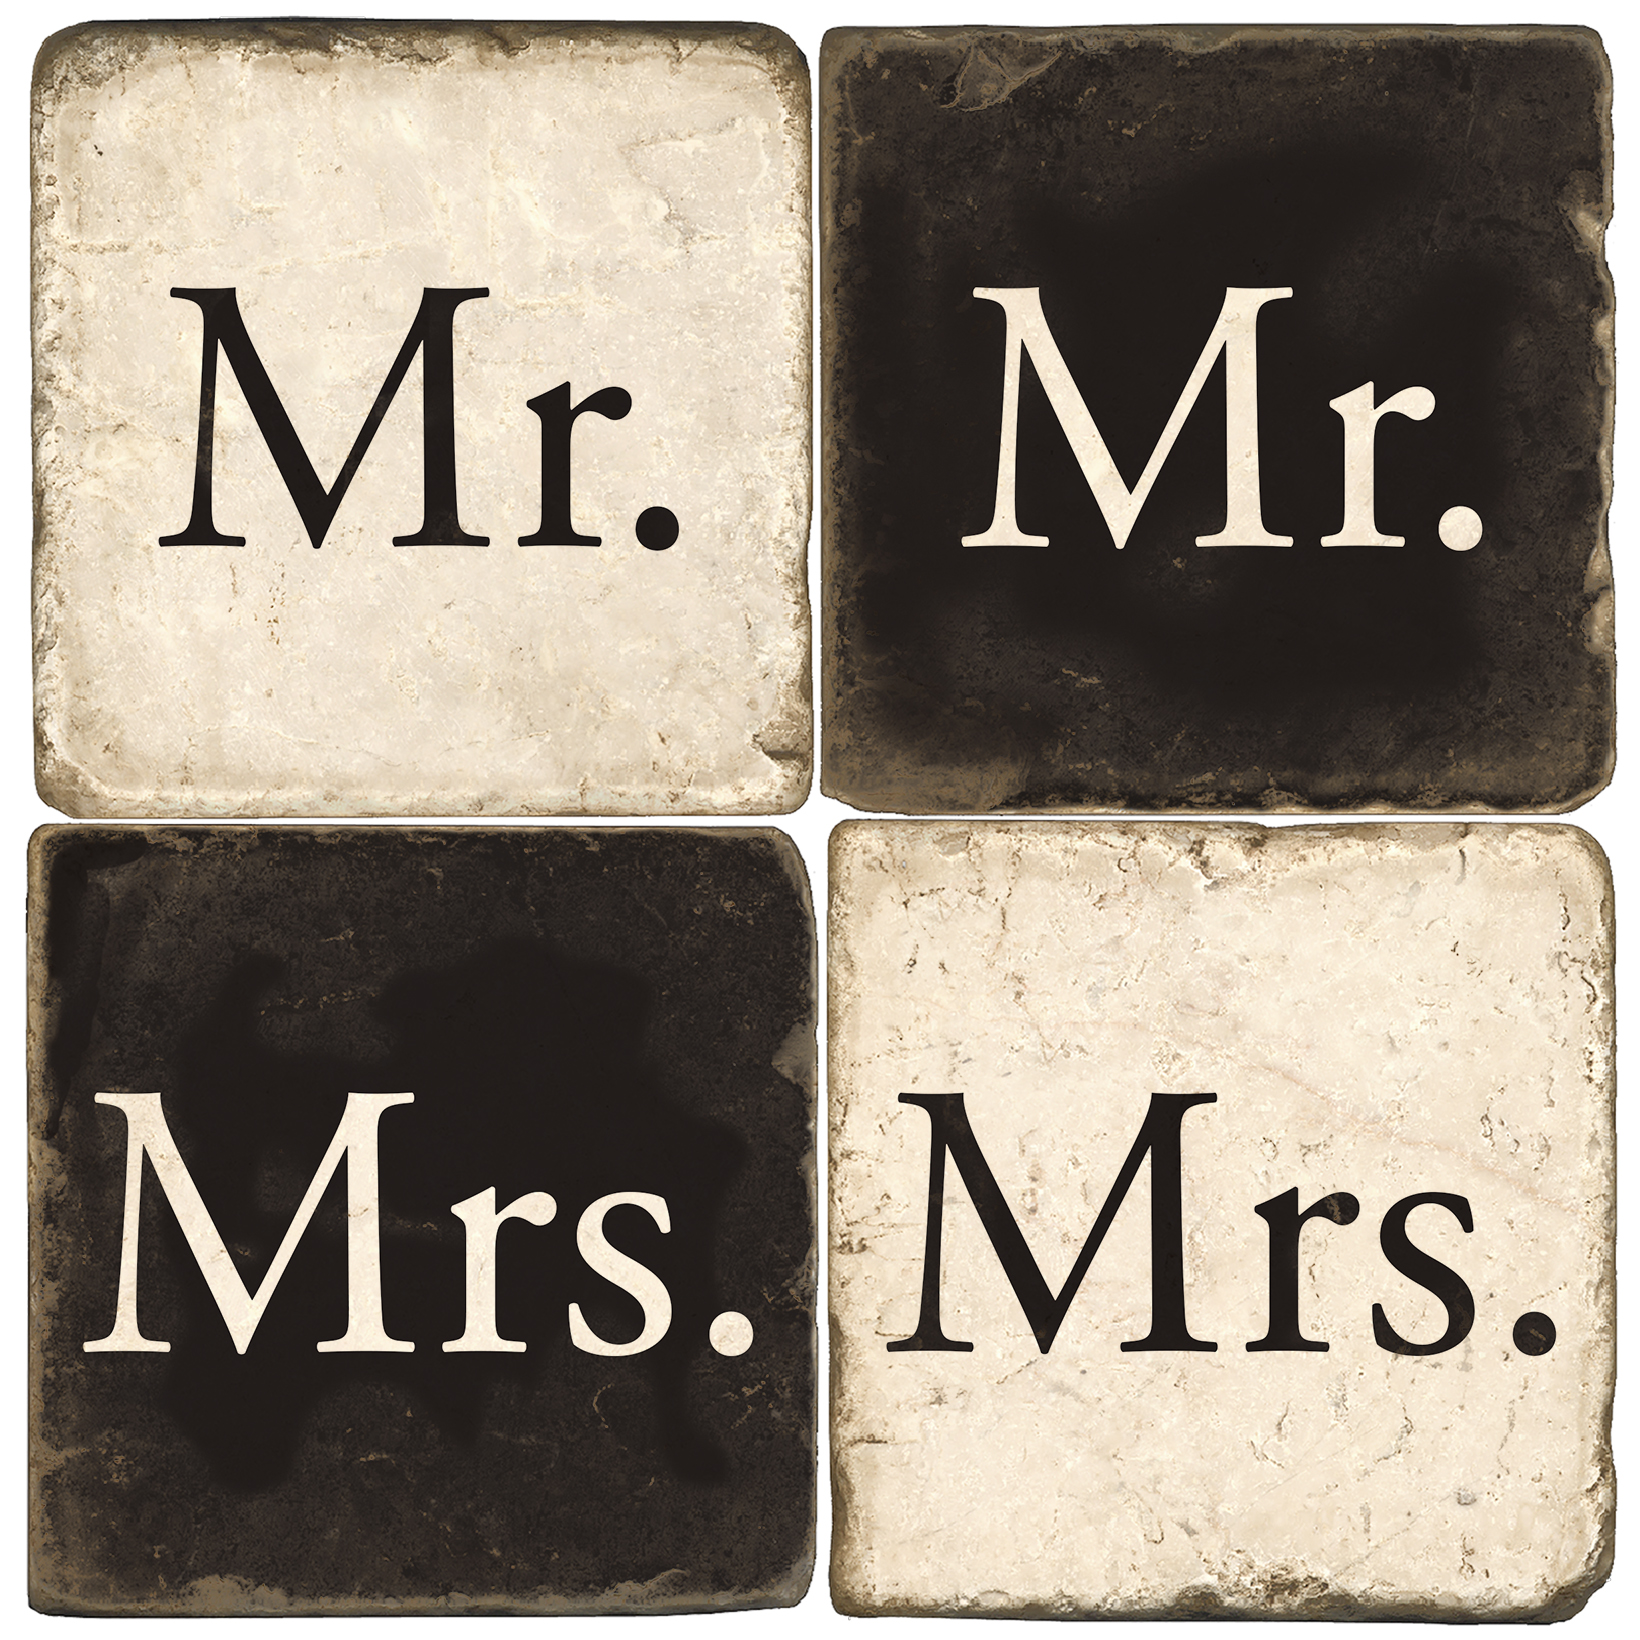 Mr and Mrs Italian Marble Coasters - Black and White